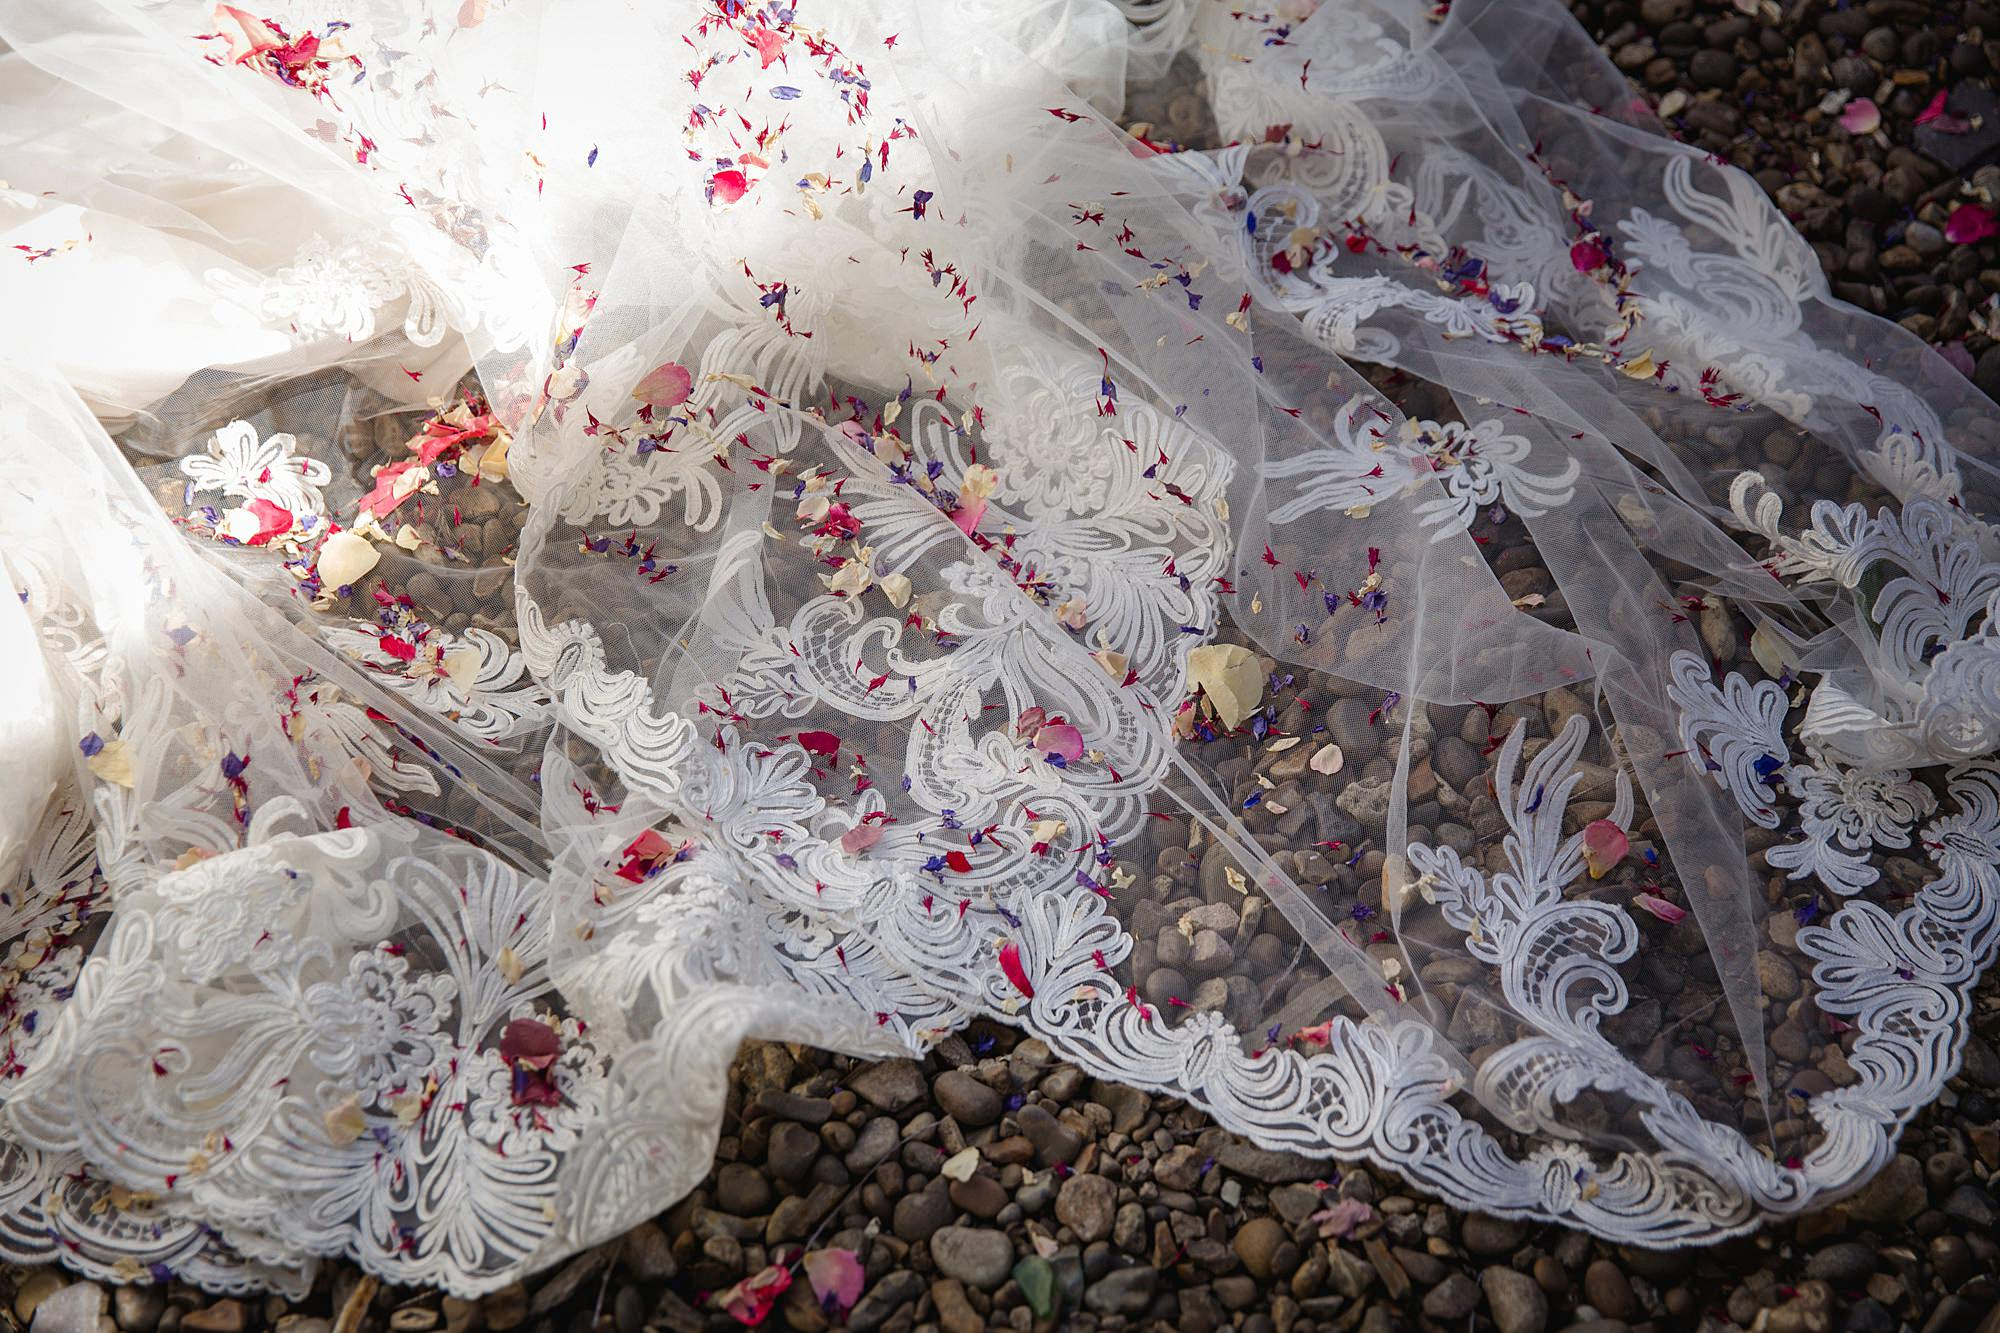 close up detail of bride's wedding dress with confetti